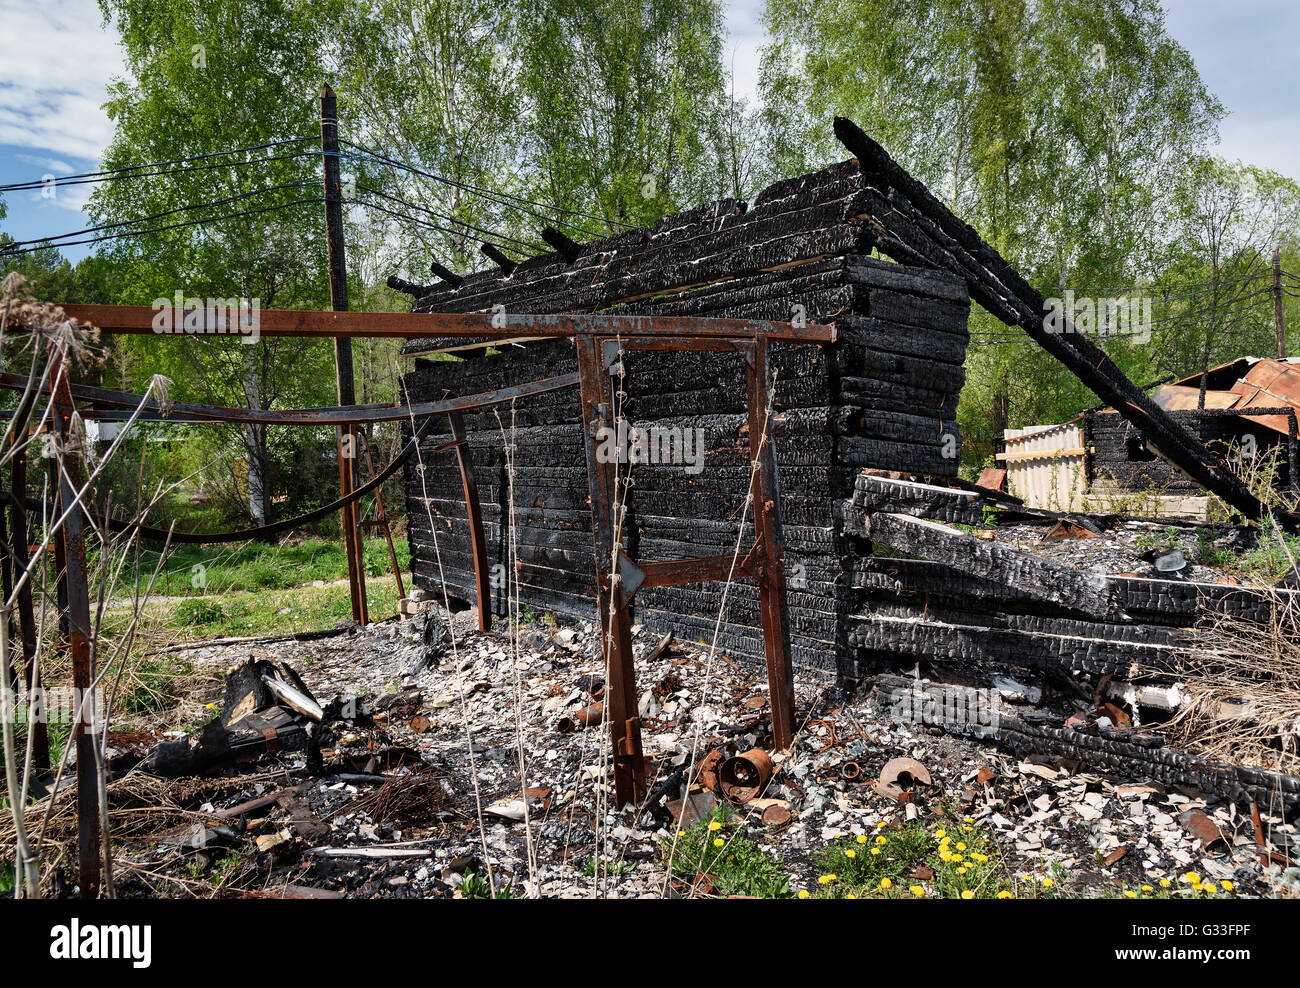 Remains Of Burned Down House In The Village Stock Photo  Royalty Free Image  105184423